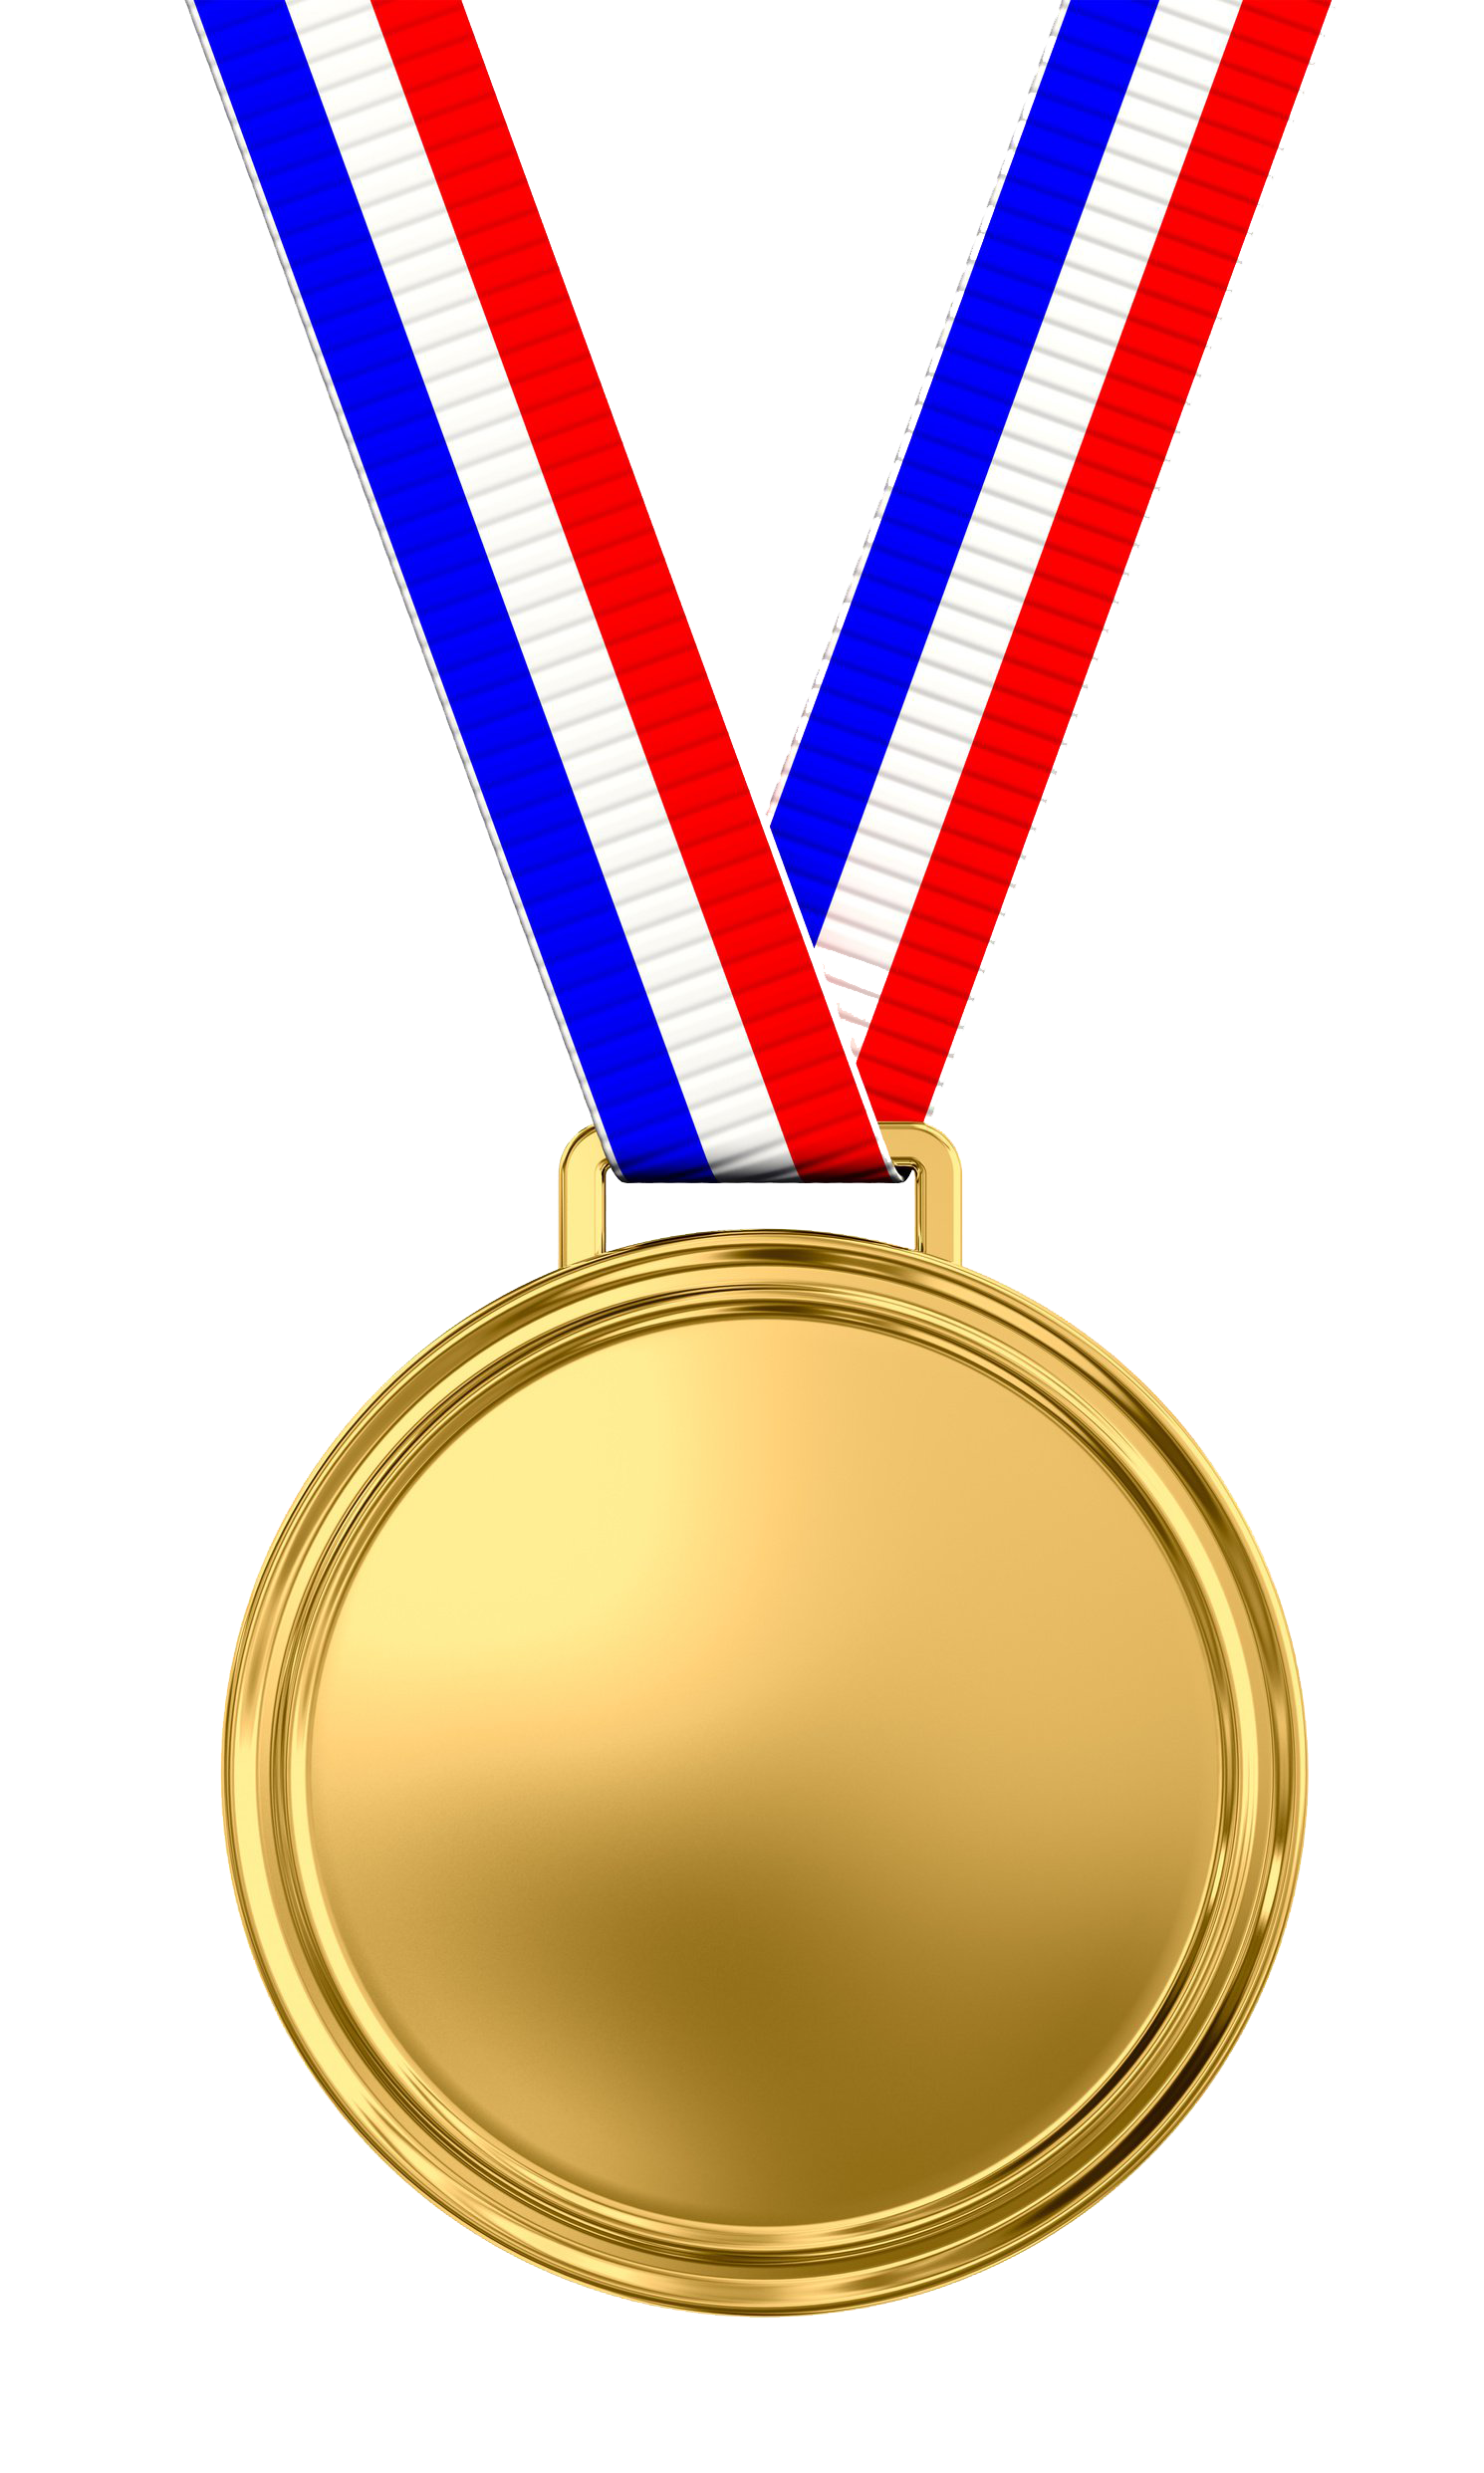 Gold Medal PNG Clipart - Medal HD PNG